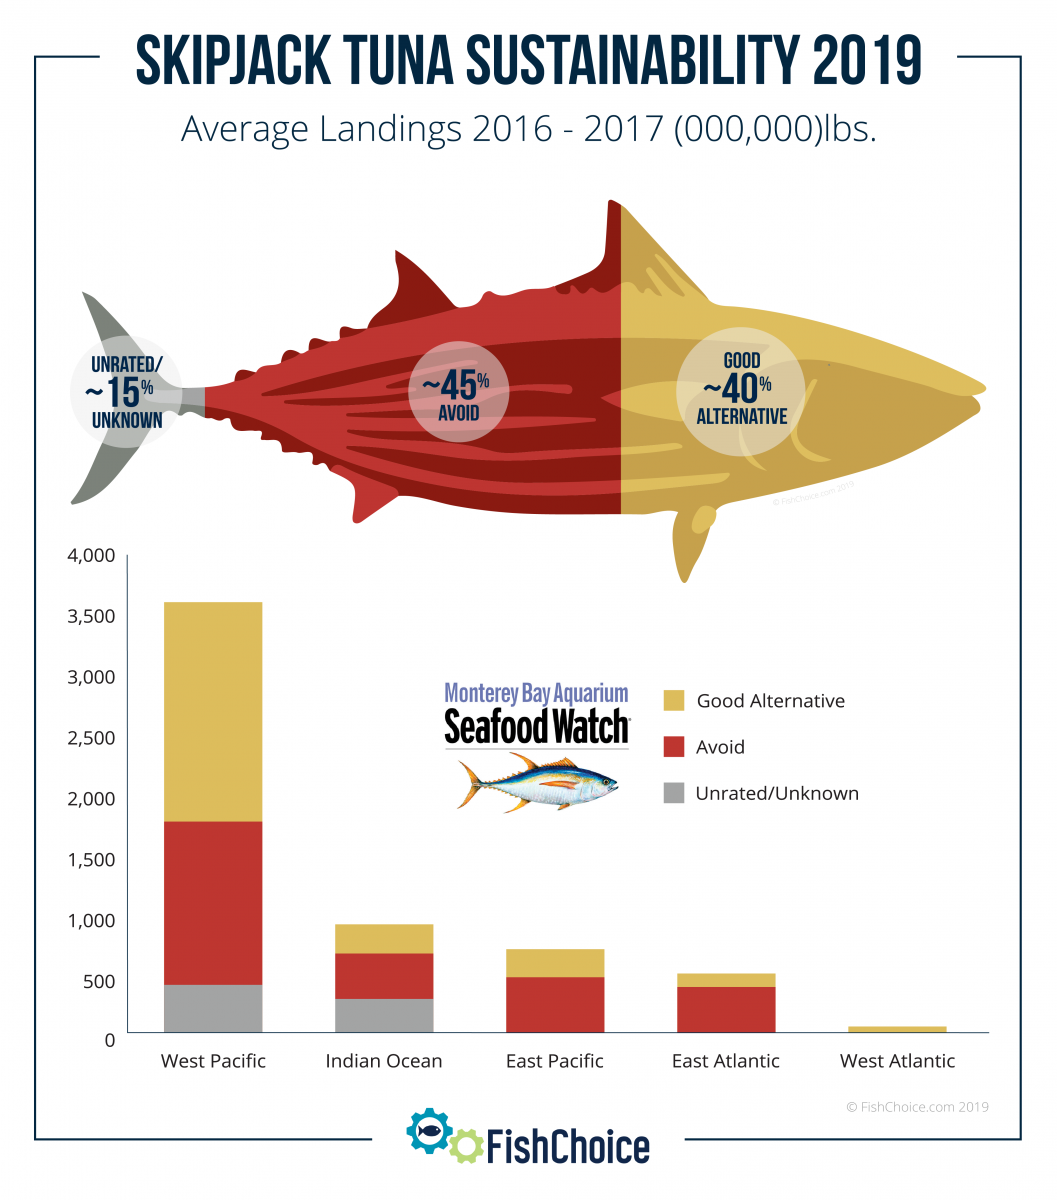 Skipjack Tuna Sustainability